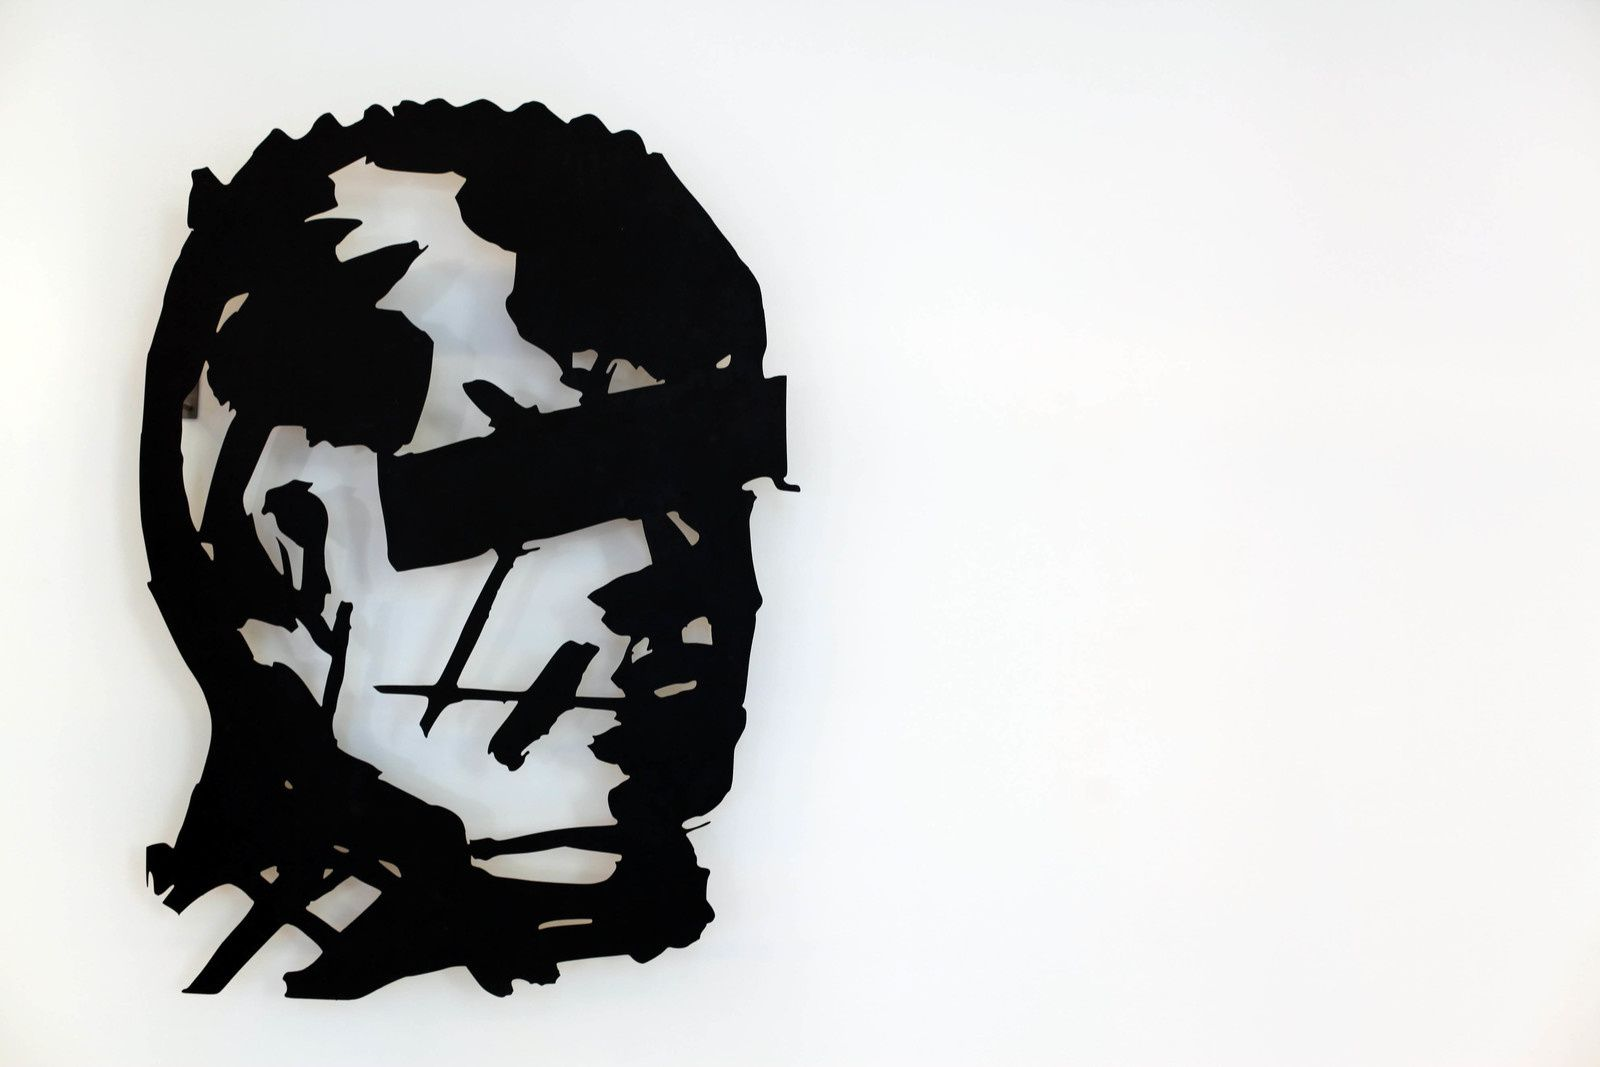 """Head (Man with Reducted Eyes)"", 2016 de William KENTRIDGE - Courtesy Galerie Italienne © Photo Éric Simon"